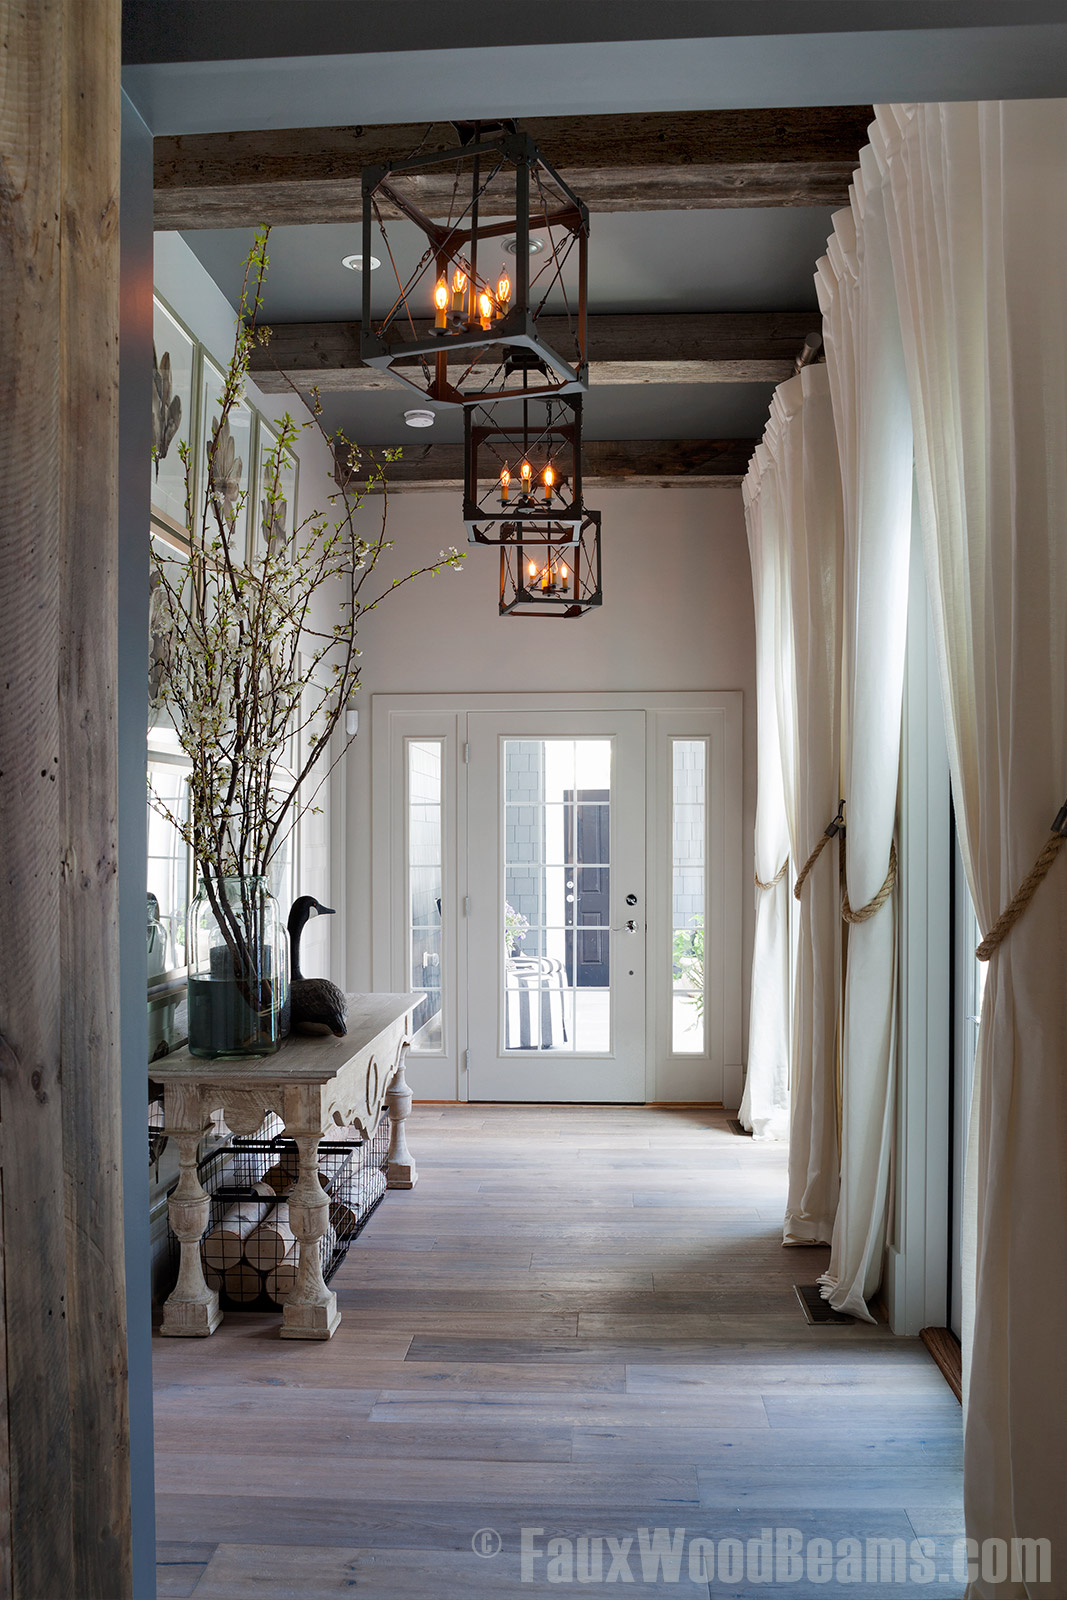 Salvaged wood beams are a great way to add elegance to interiors.